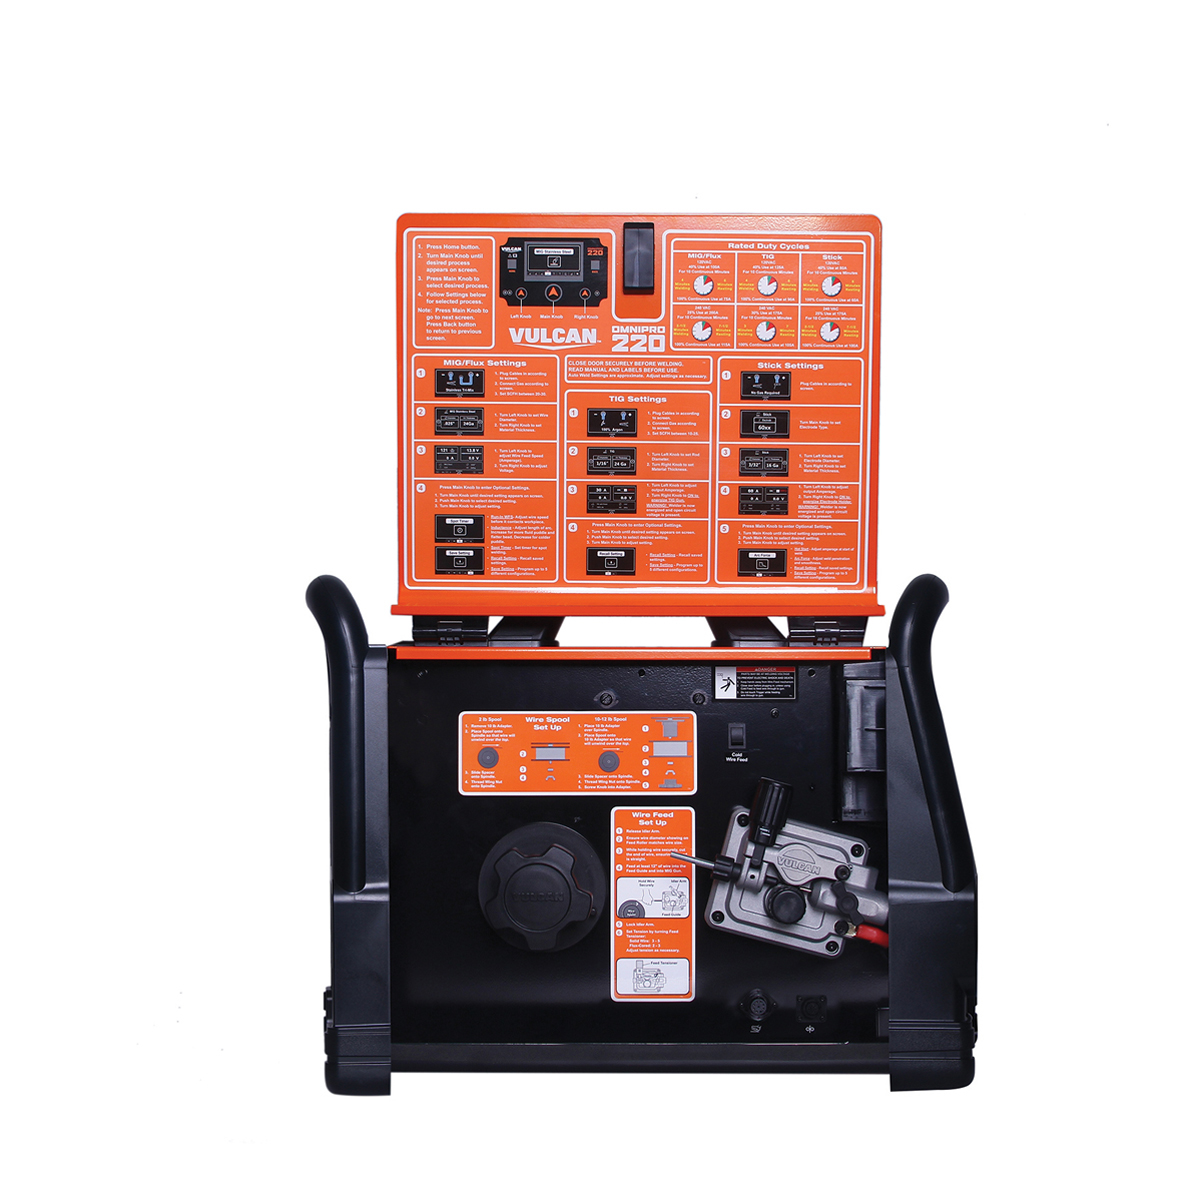 Omnipro 220 Industrial Multiprocess Welder With 120 240 Volt Input Wiring Up A 220v Welding Machine